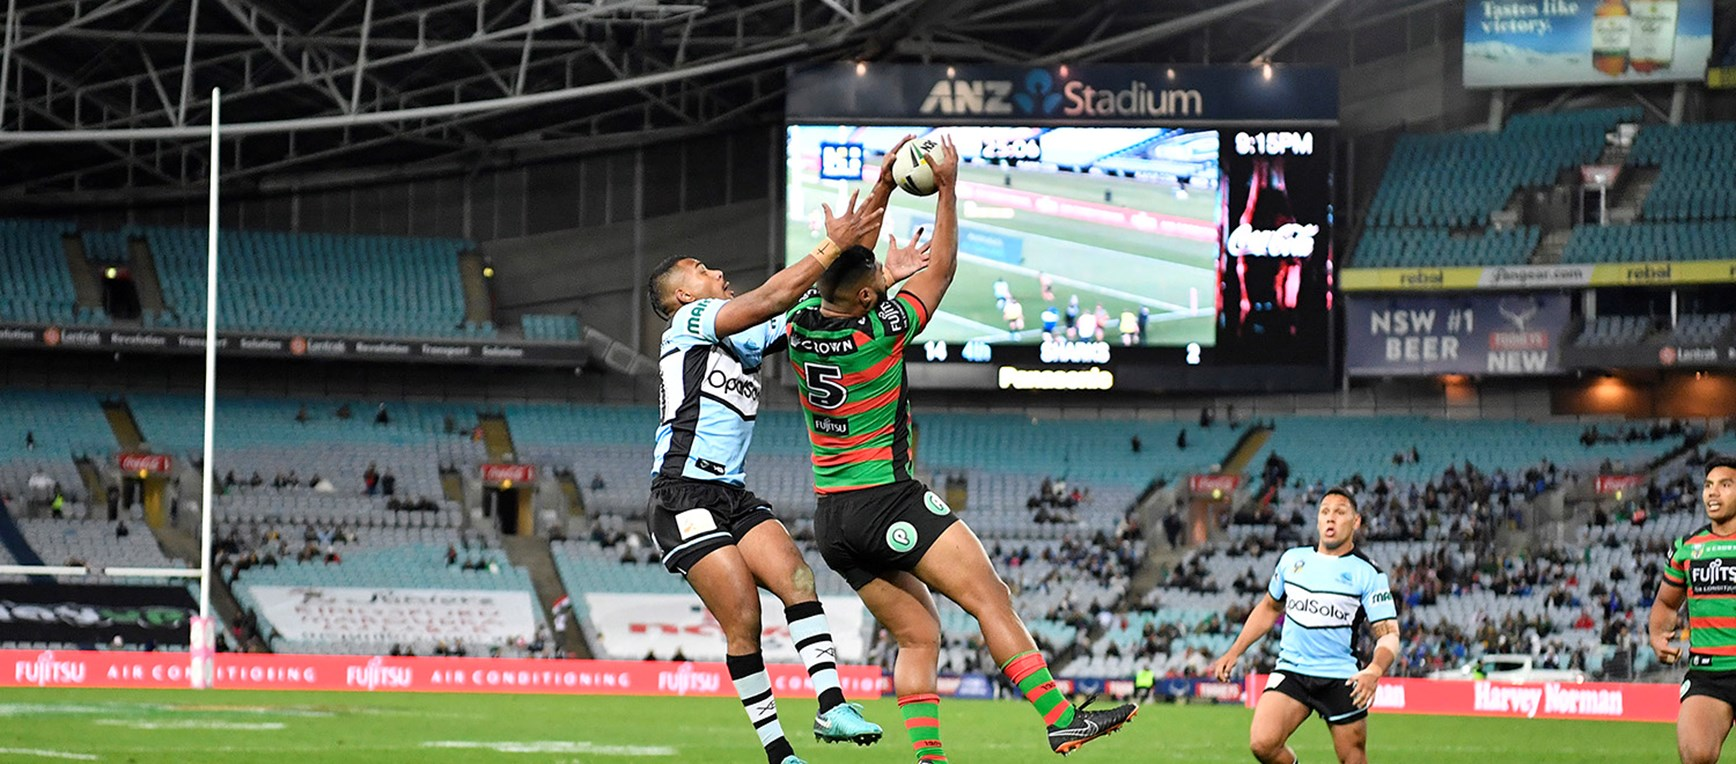 Gallery - Rabbitohs v Sharks